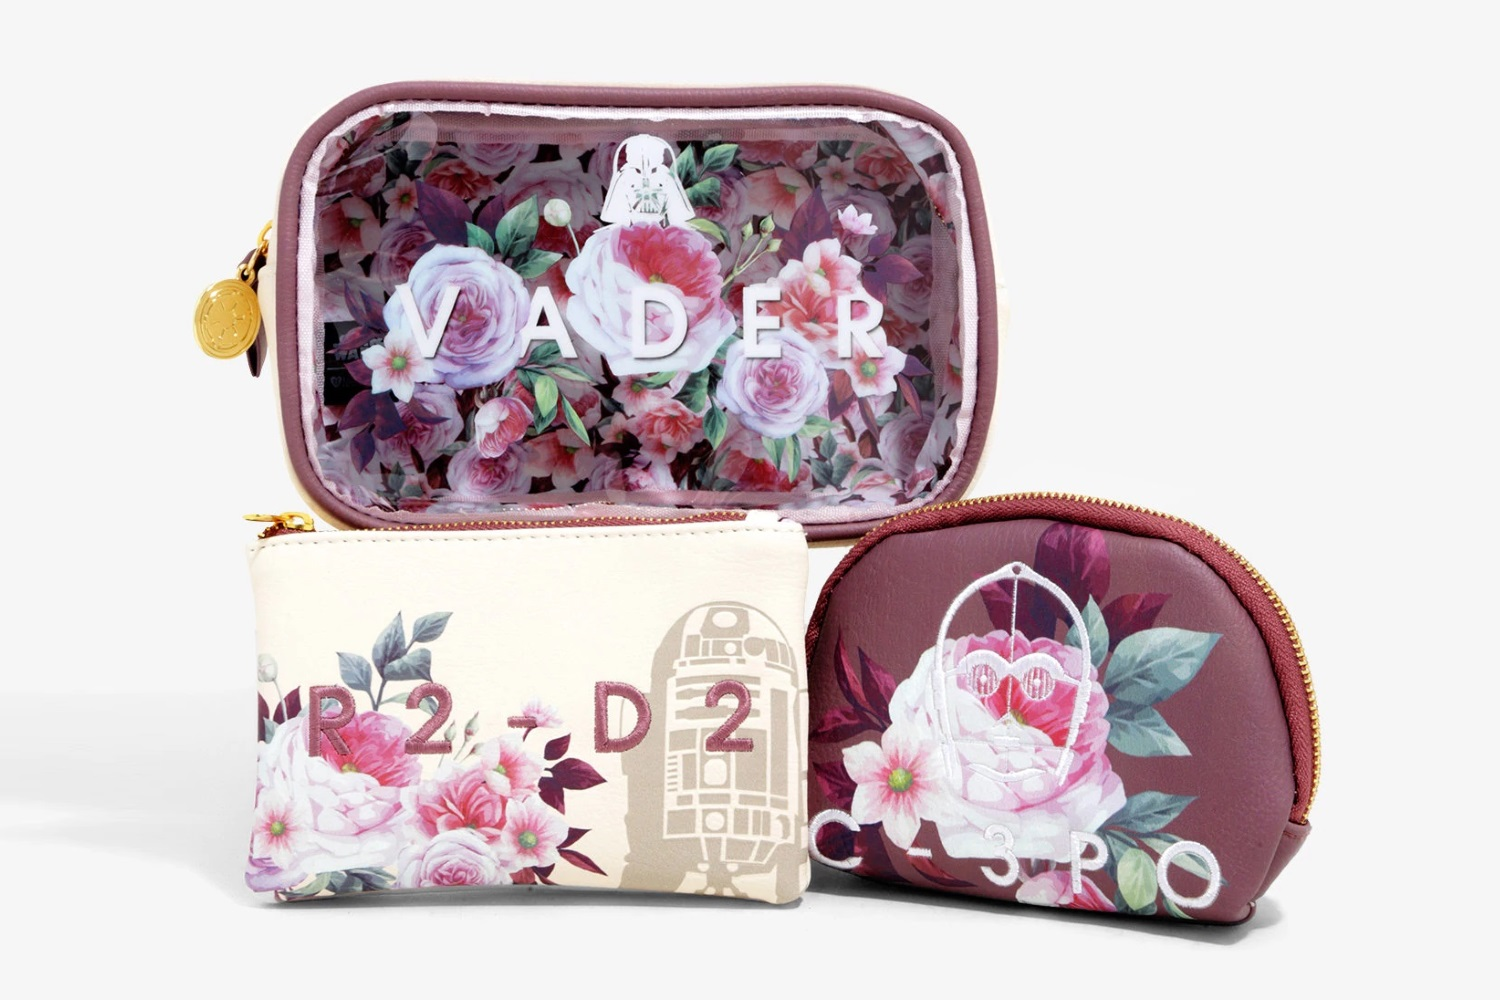 Loungefly x Star Wars Floral Makeup Bag Set